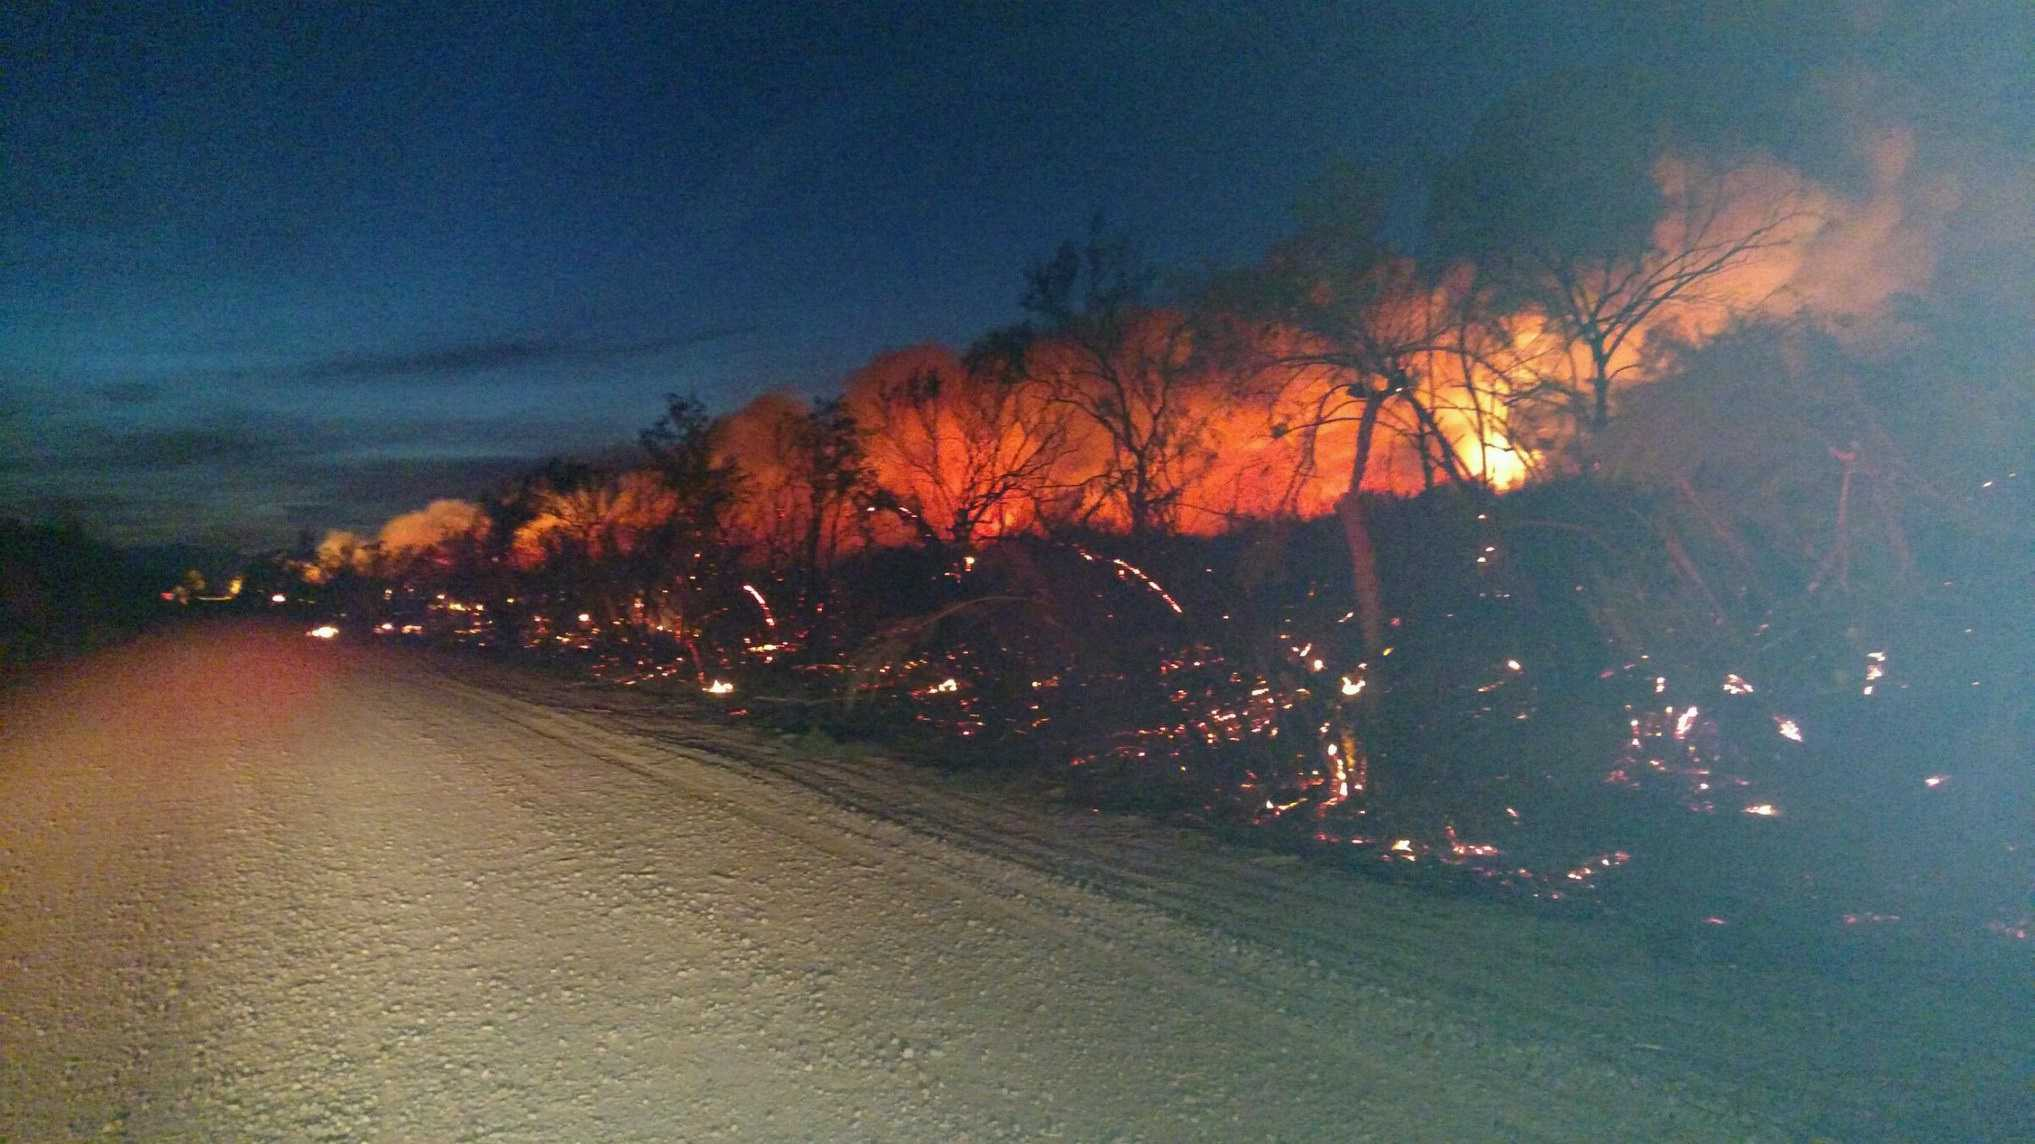 Arizona mohave county topock - South Fire Pic South Fire